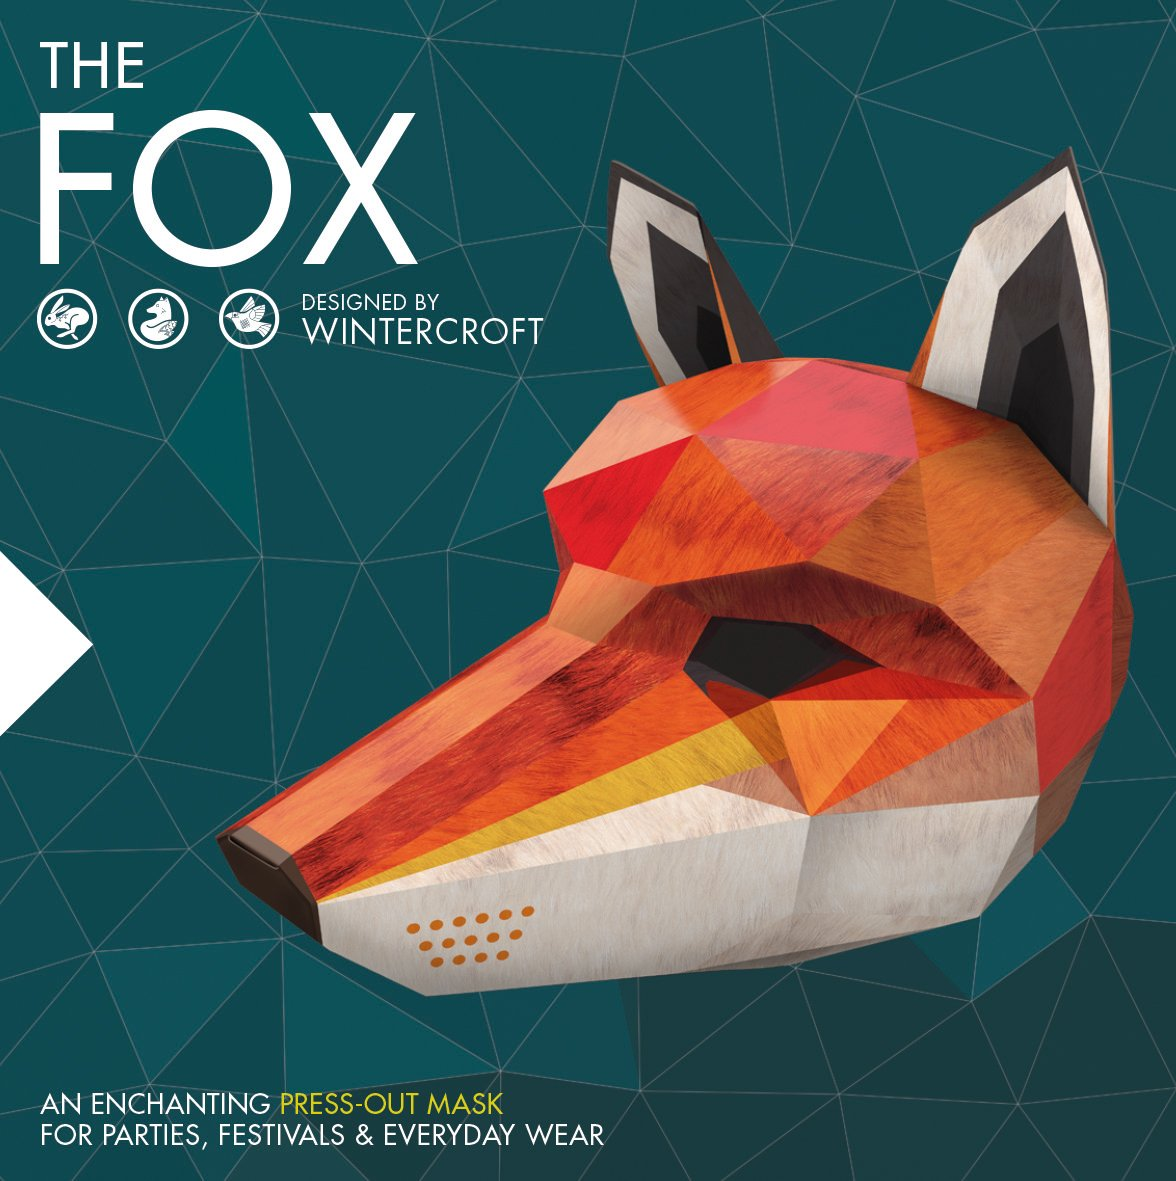 The Fox Designed By Wintercroft A Beautiful Press Out Mask For Festivals Parties And Everyday Wear 9781780977317 Books